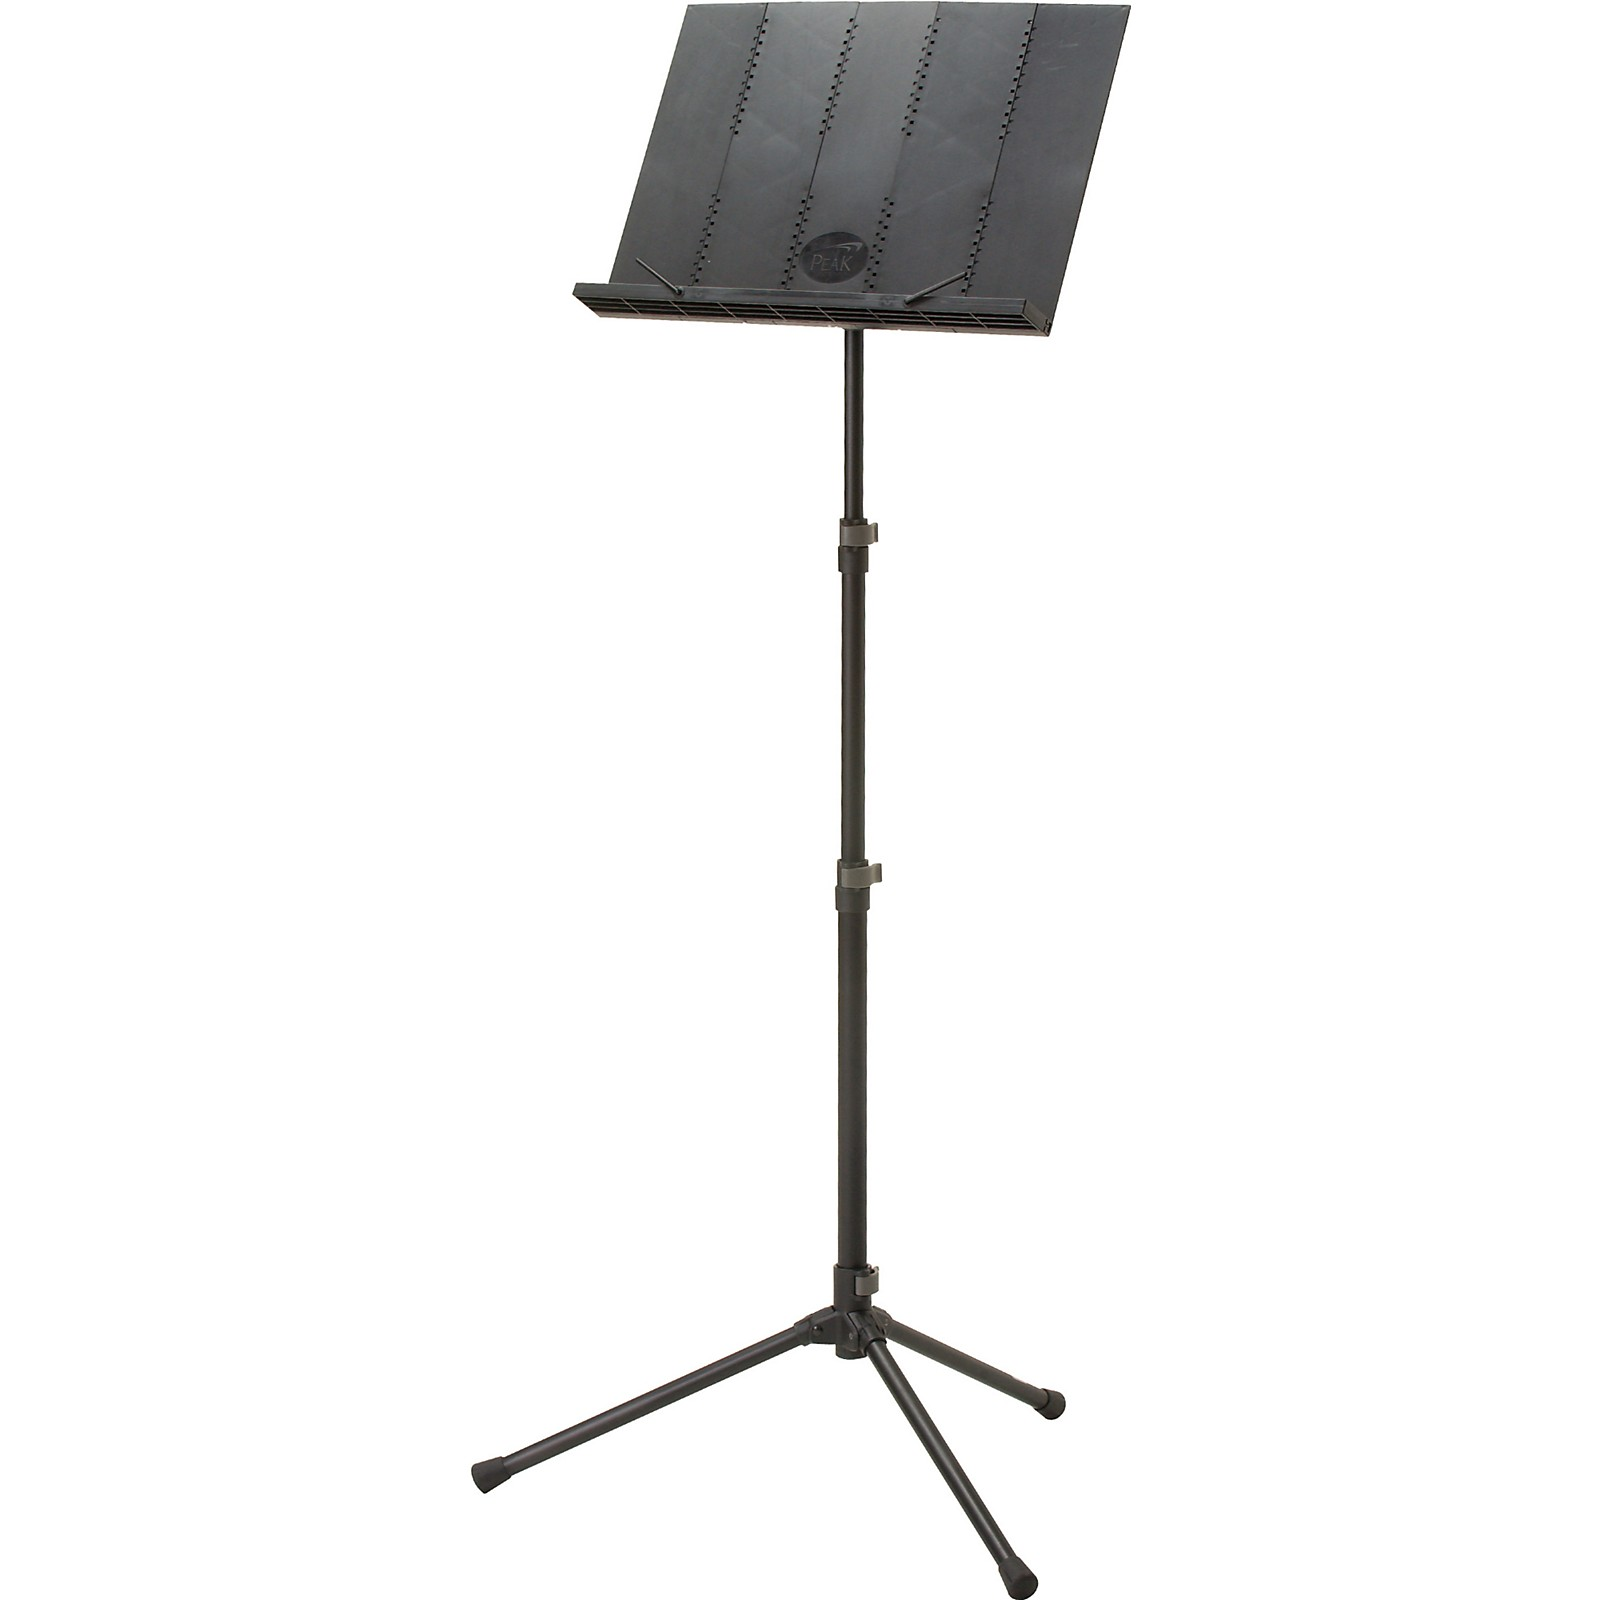 Peak Music Stands Portable Music Stand